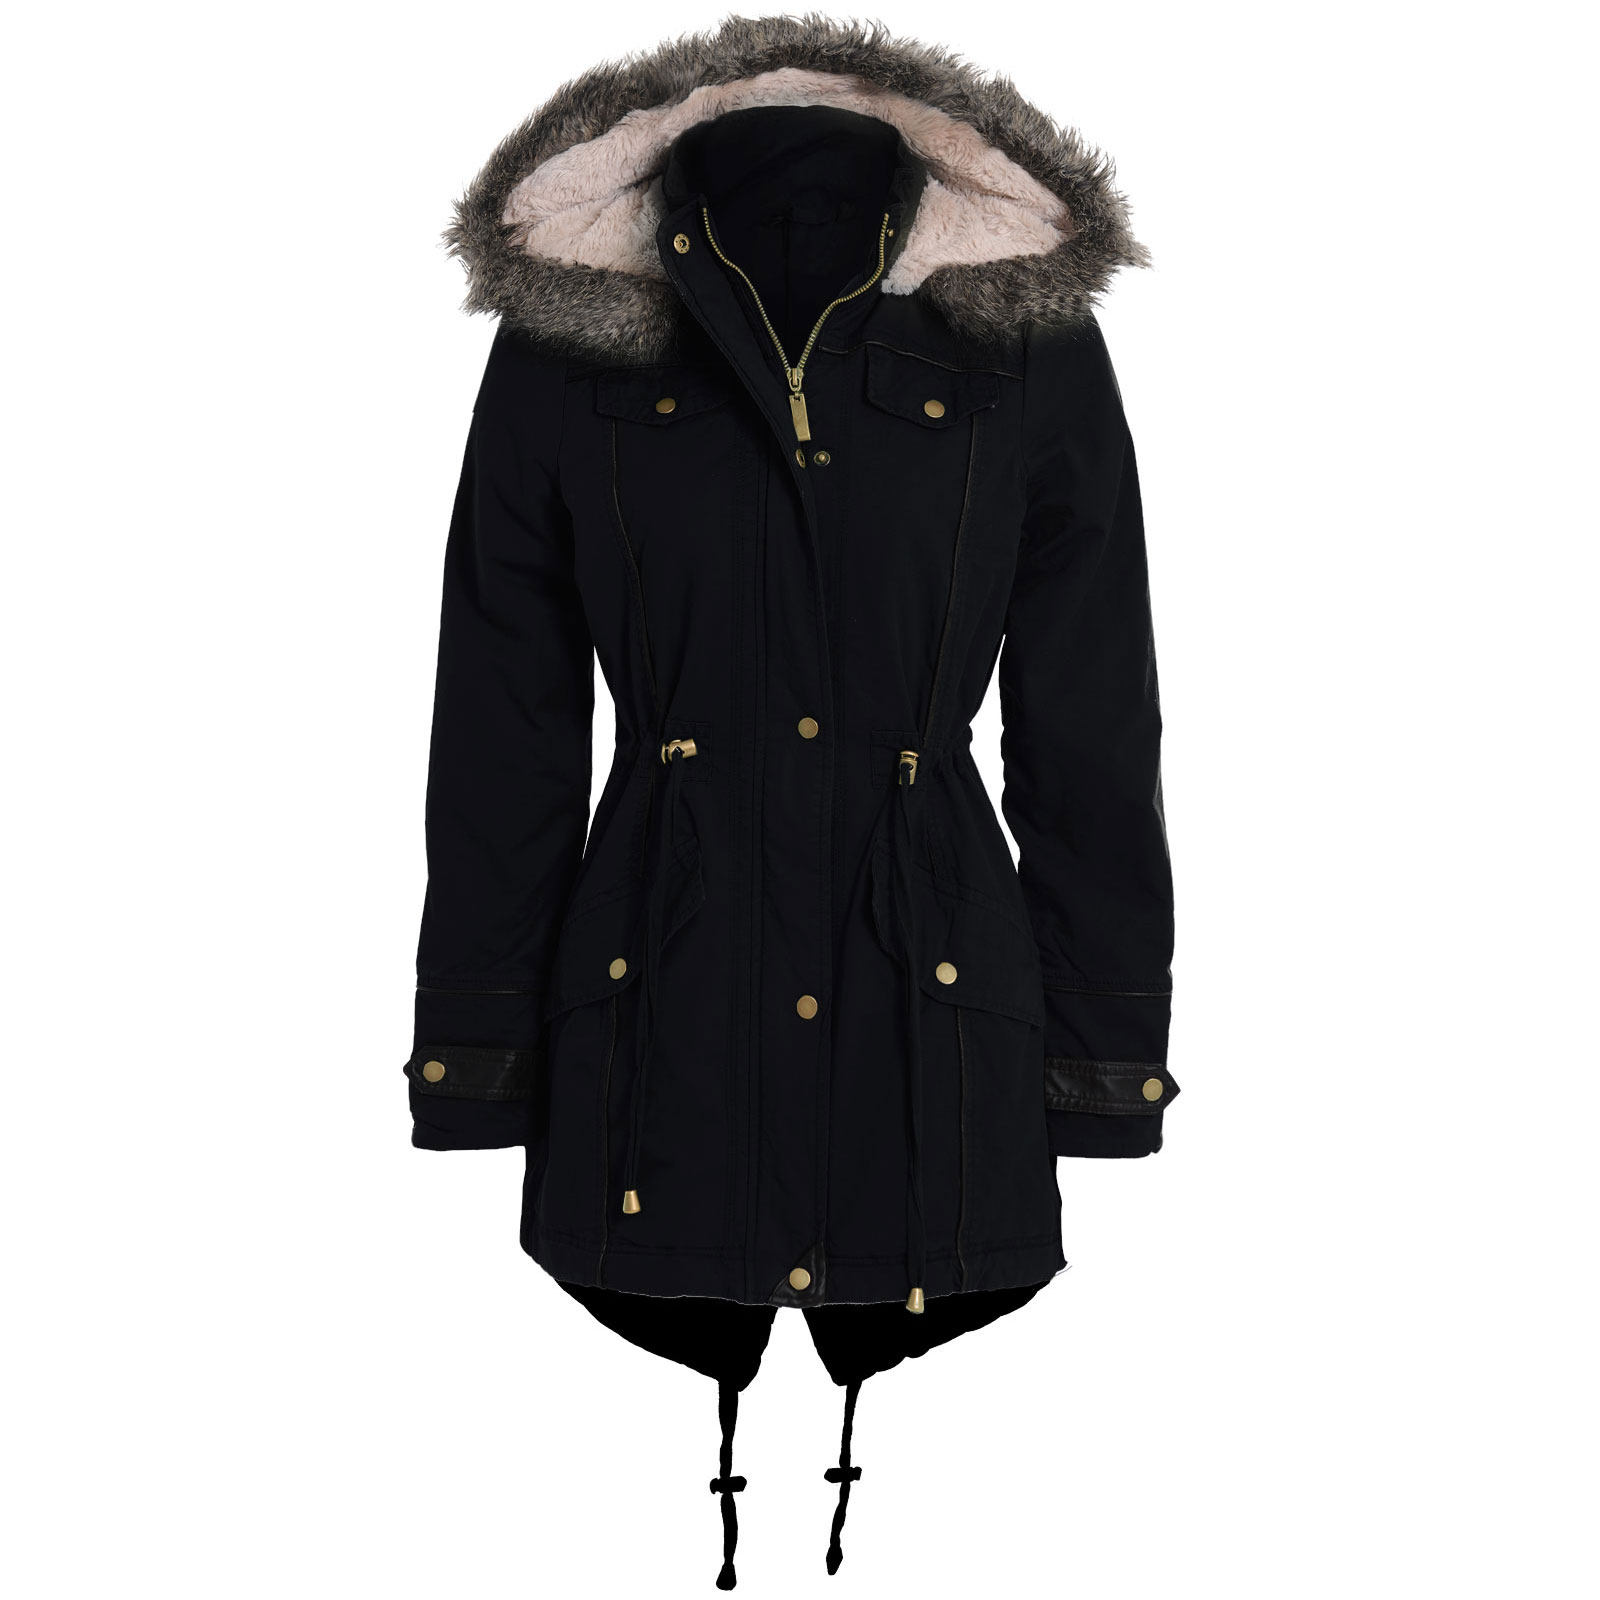 Womens Black Jacket With Fur Hood | Fit Jacket